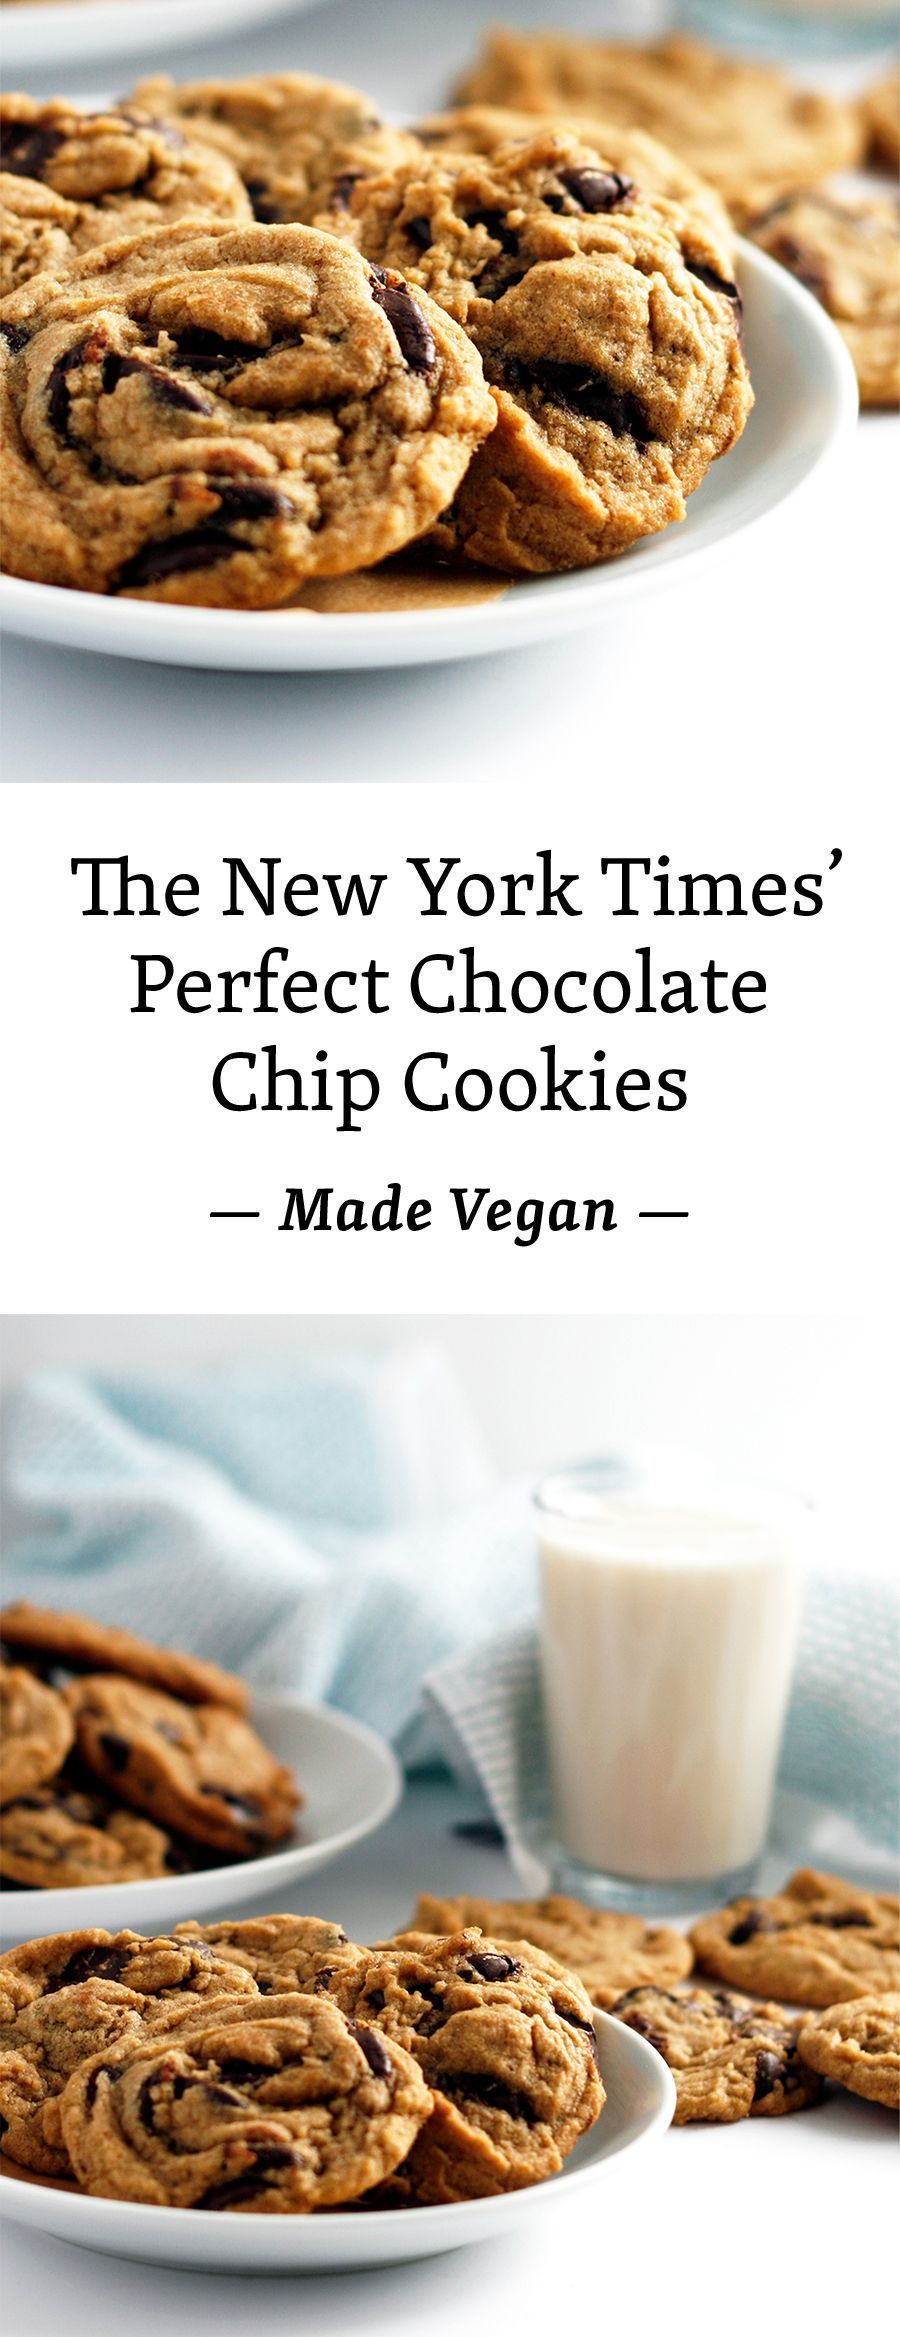 New York Times' Perfect Chocolate Chip Cookies, Made Vegan A vegan adaptation of the New York Times' perfect chocolate chip cookie. Made with bittersweet chocolate and flake sea salt, it's the essential cookie.(Baking Cheesecake New York)A vegan adaptation of the New York Times' perfect chocolate chip cookie. Made with bittersweet chocolate and...